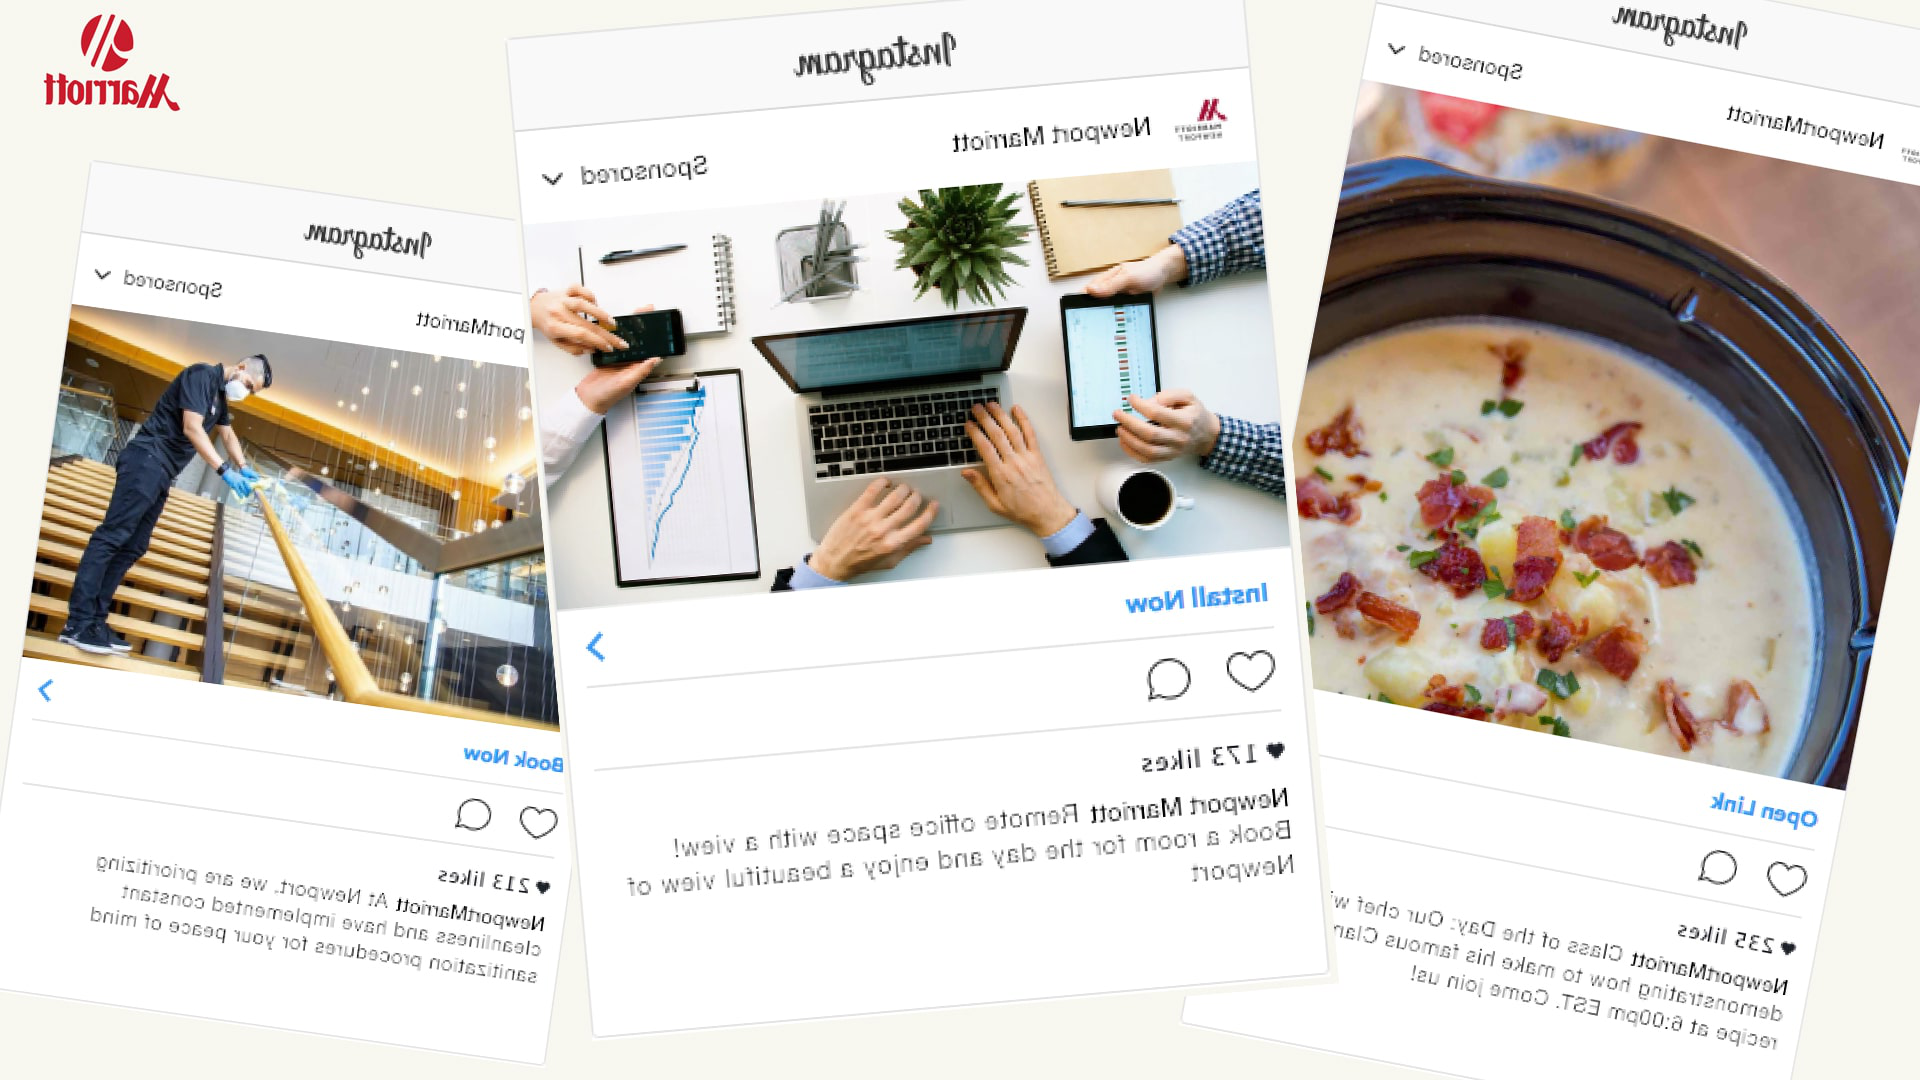 CQ9电子游戏 students mocked up Instagram posts as part of their consulting work with the Newport Marriott.